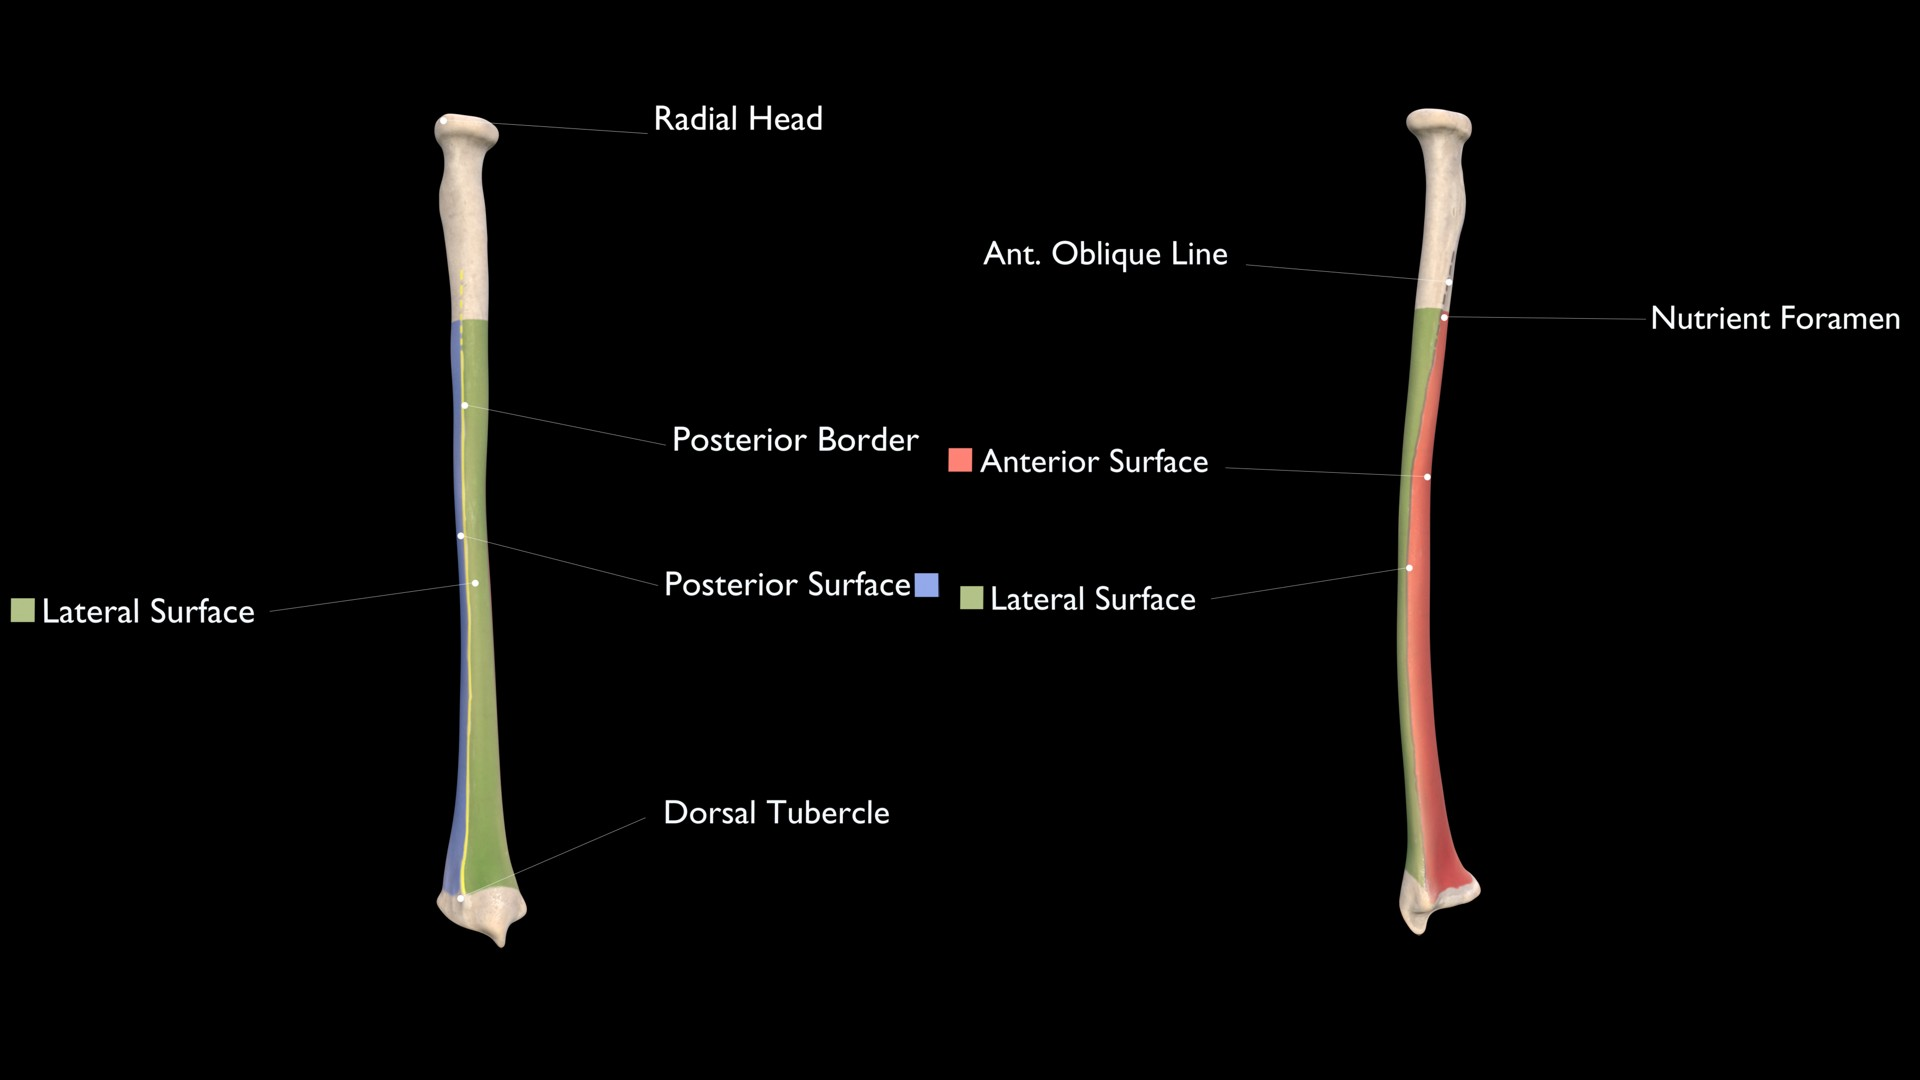 Lateral Surface of Radius